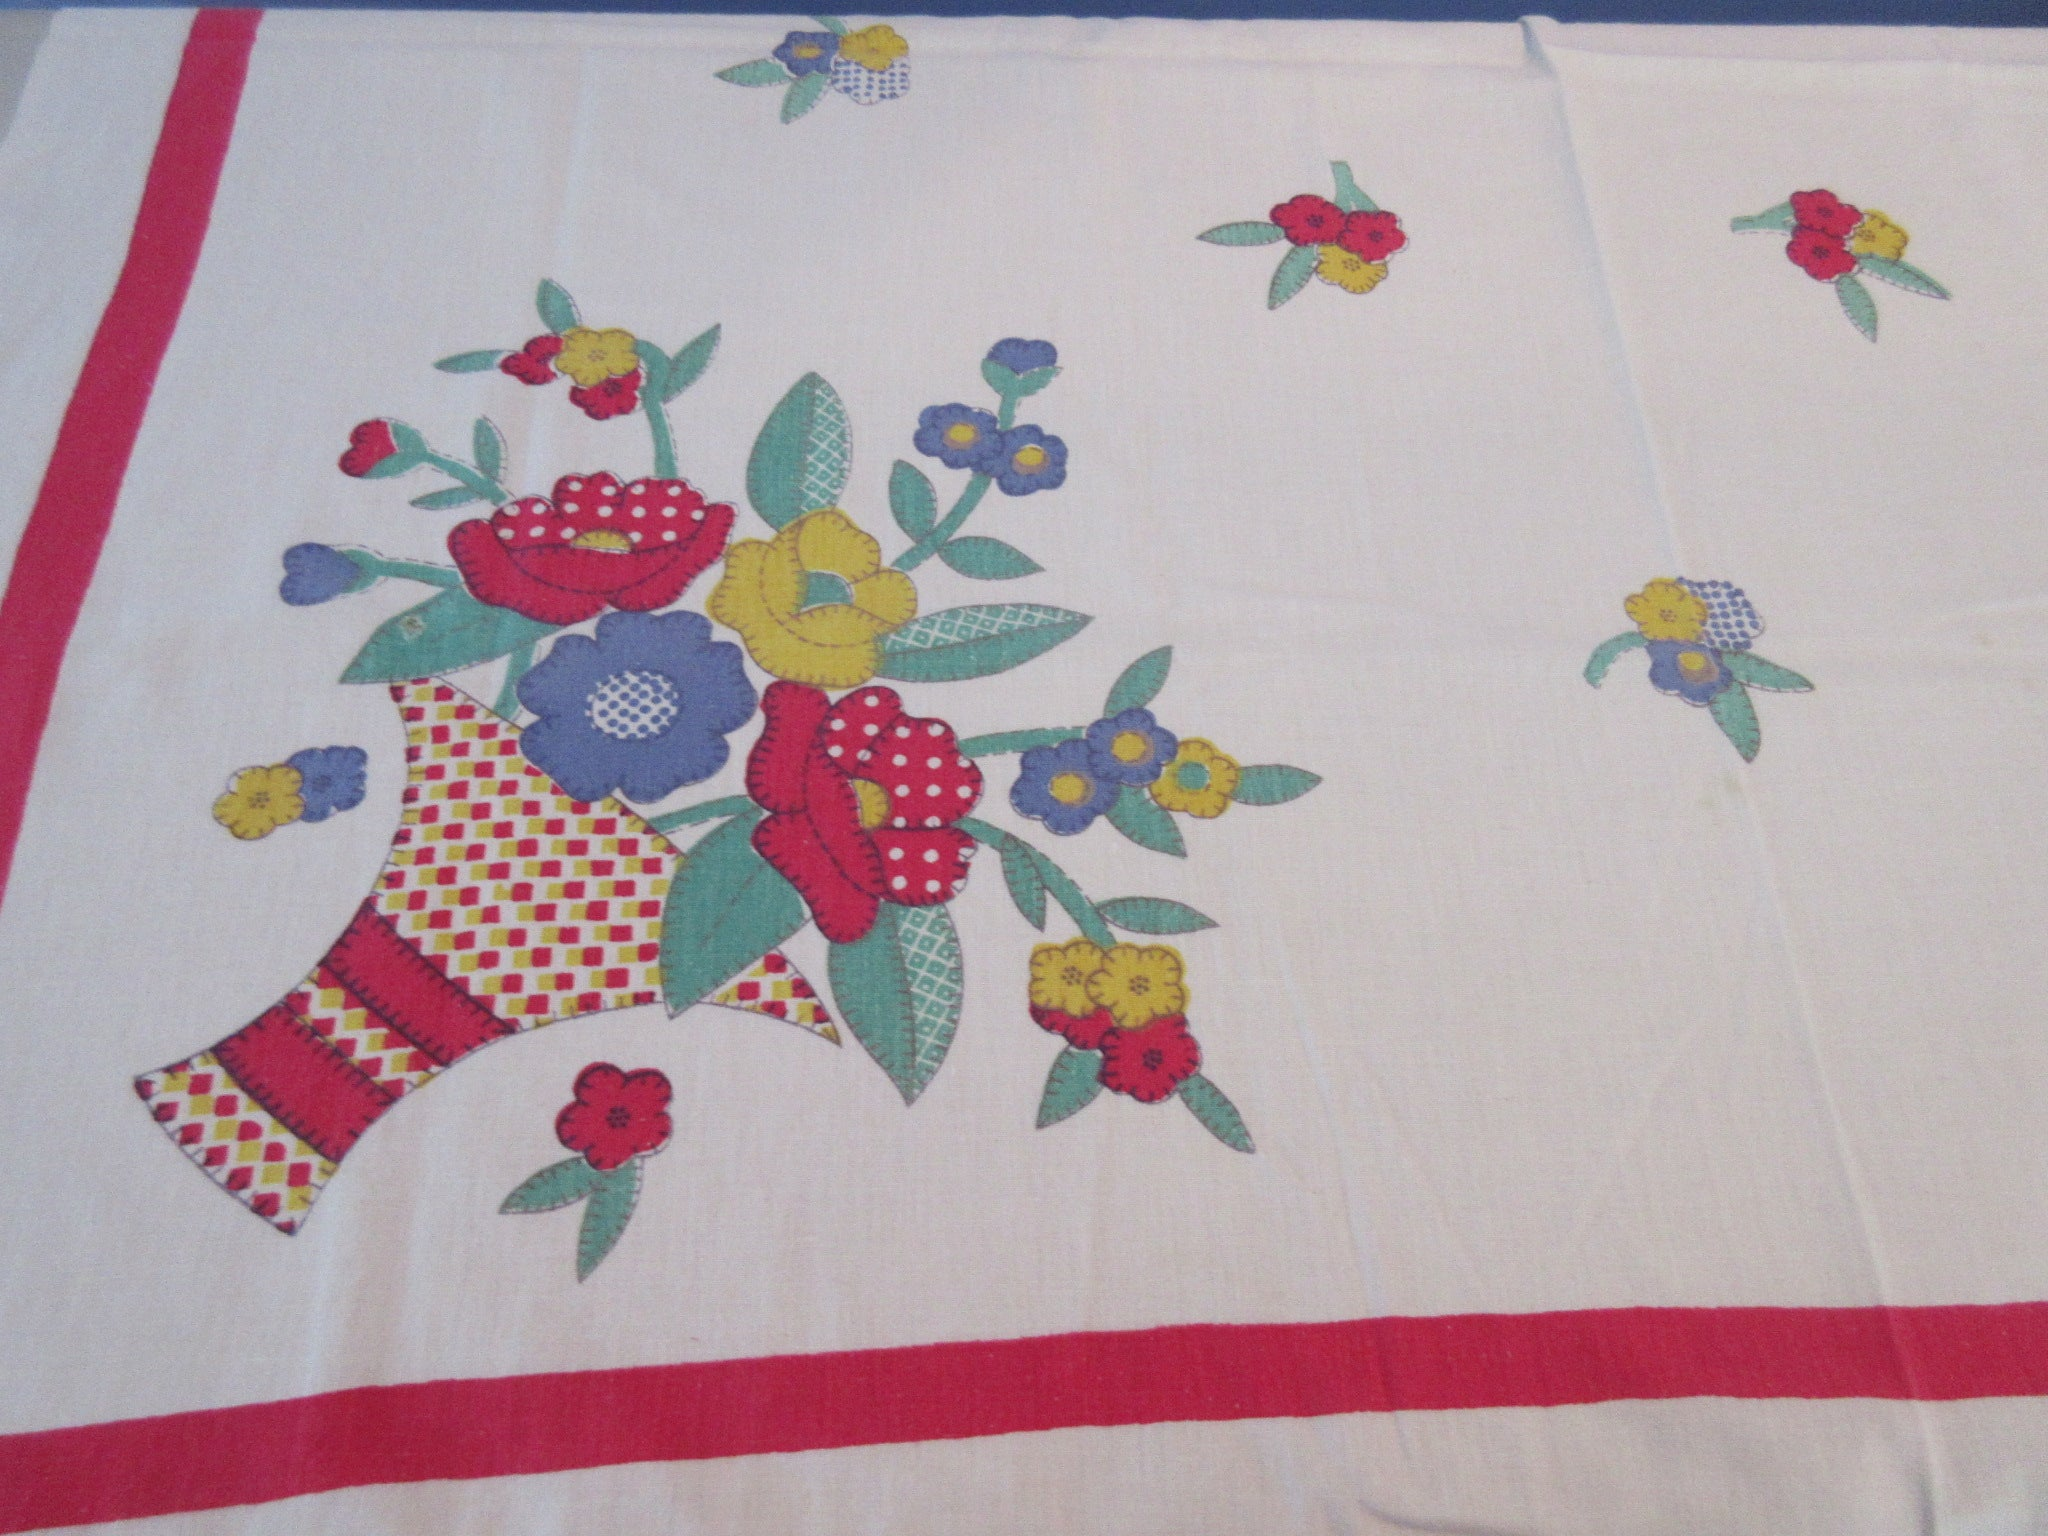 Shabby Primary Quilt Calico Flower Baskets Floral Vintage Printed Tablecloth (50 X 47)